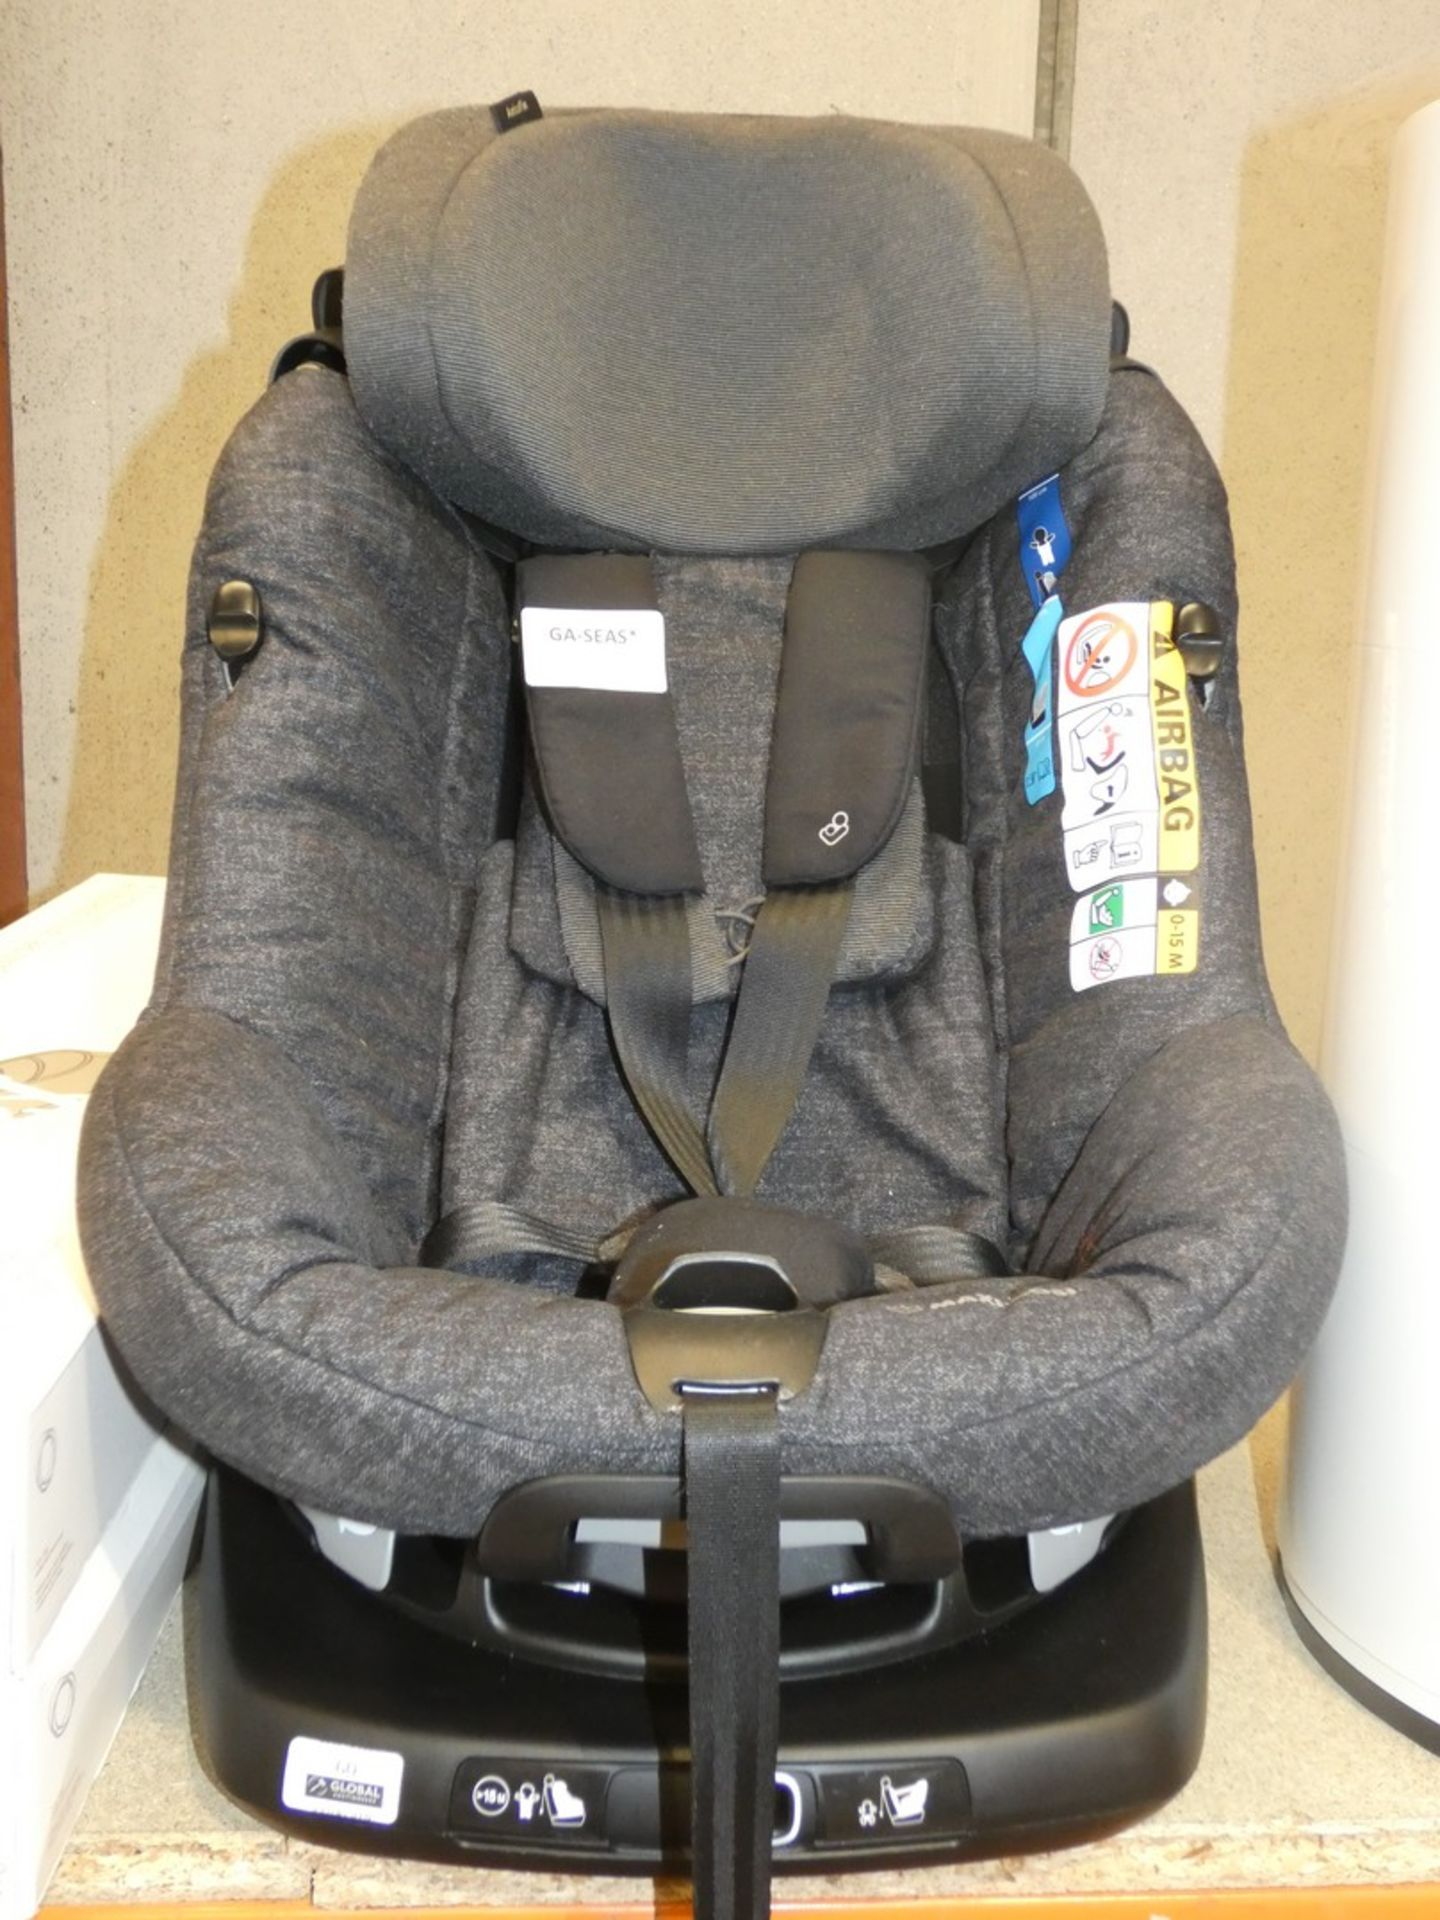 Lot 60 - Maxi Cosy 360 Swivel In Car Safety Seat with Isofix Base